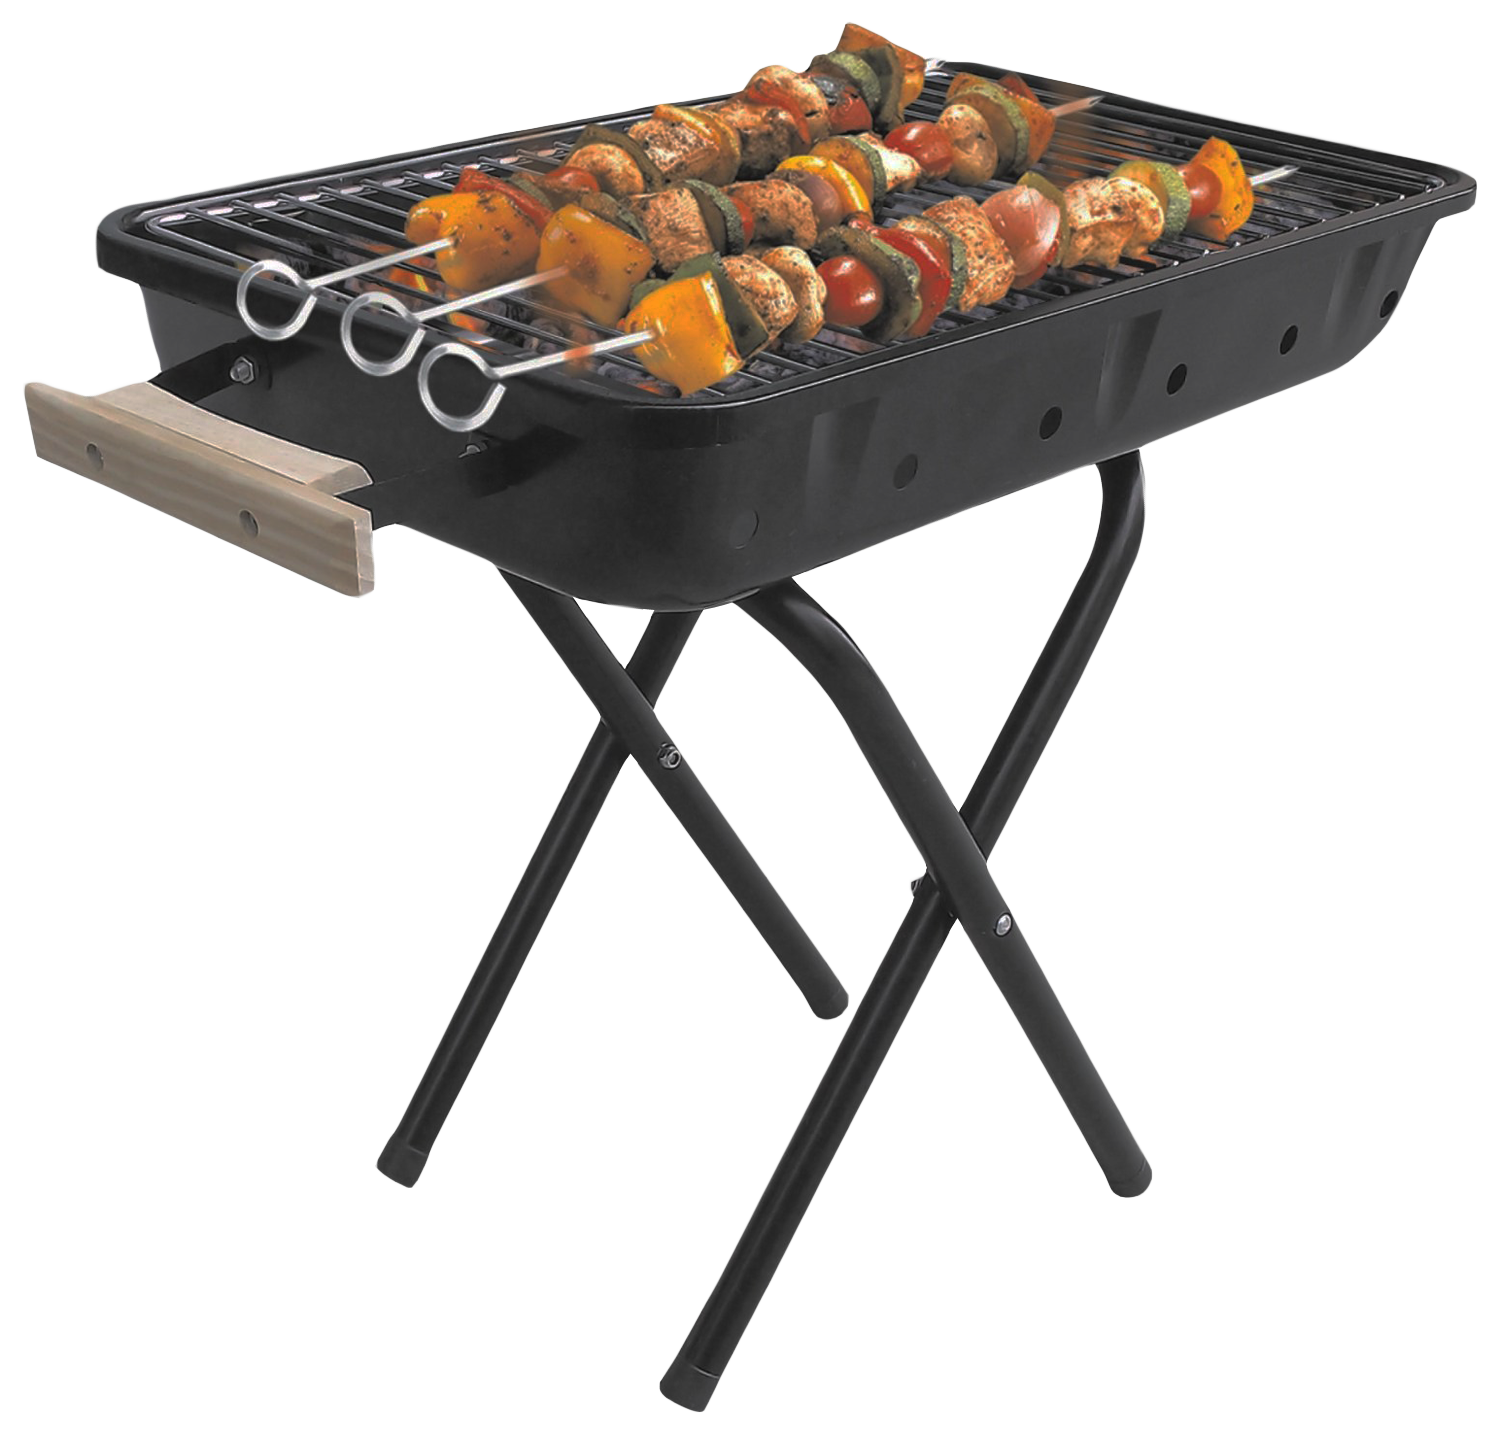 Barbecue grill png. Electric tandoor barbeque image